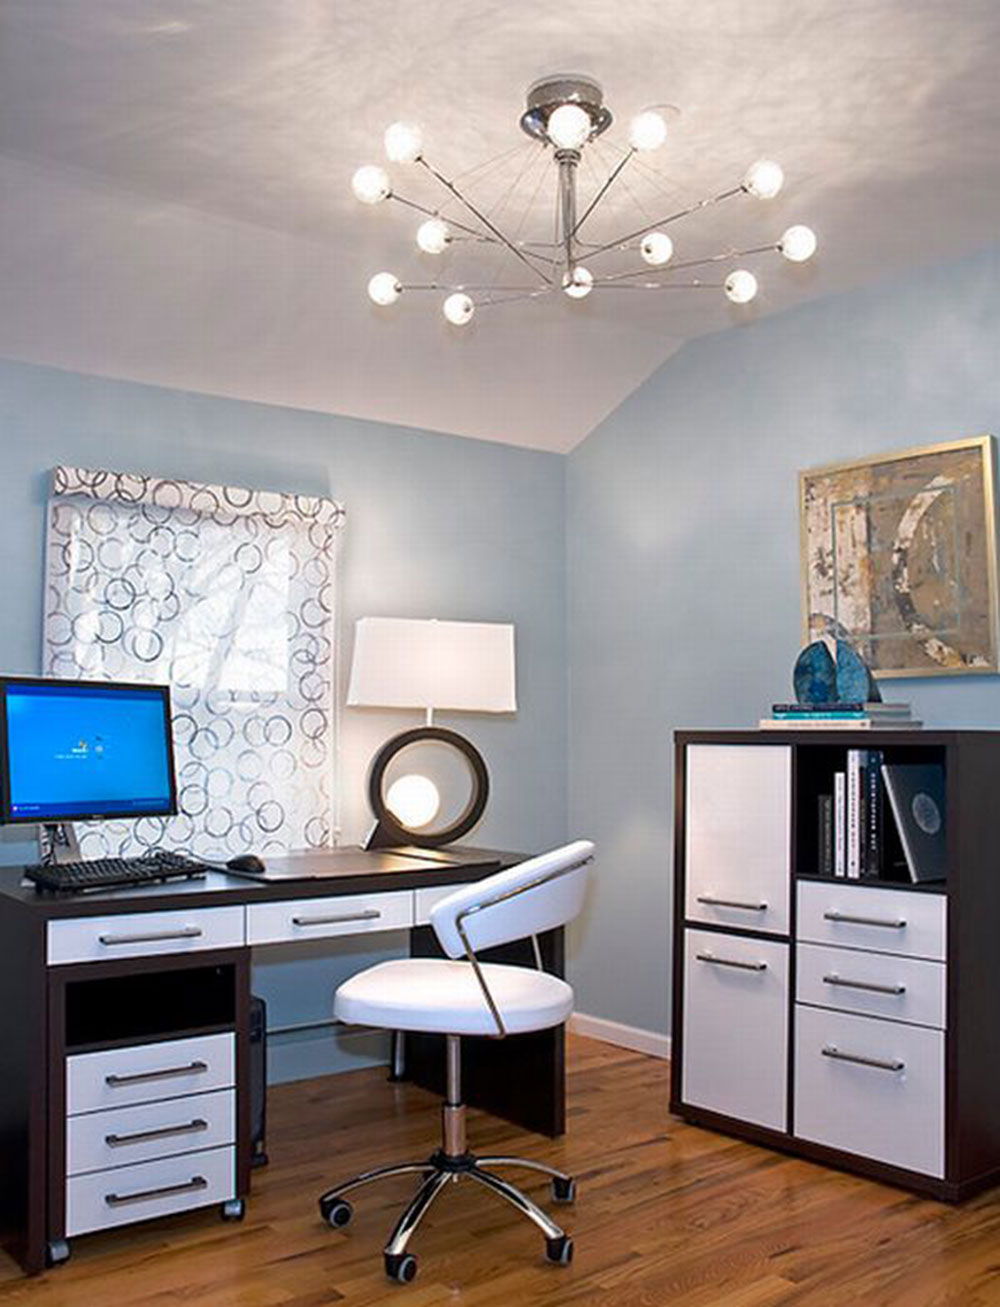 Attractive-and-bright-modern Modern home office ideas with which you can create your perfect space